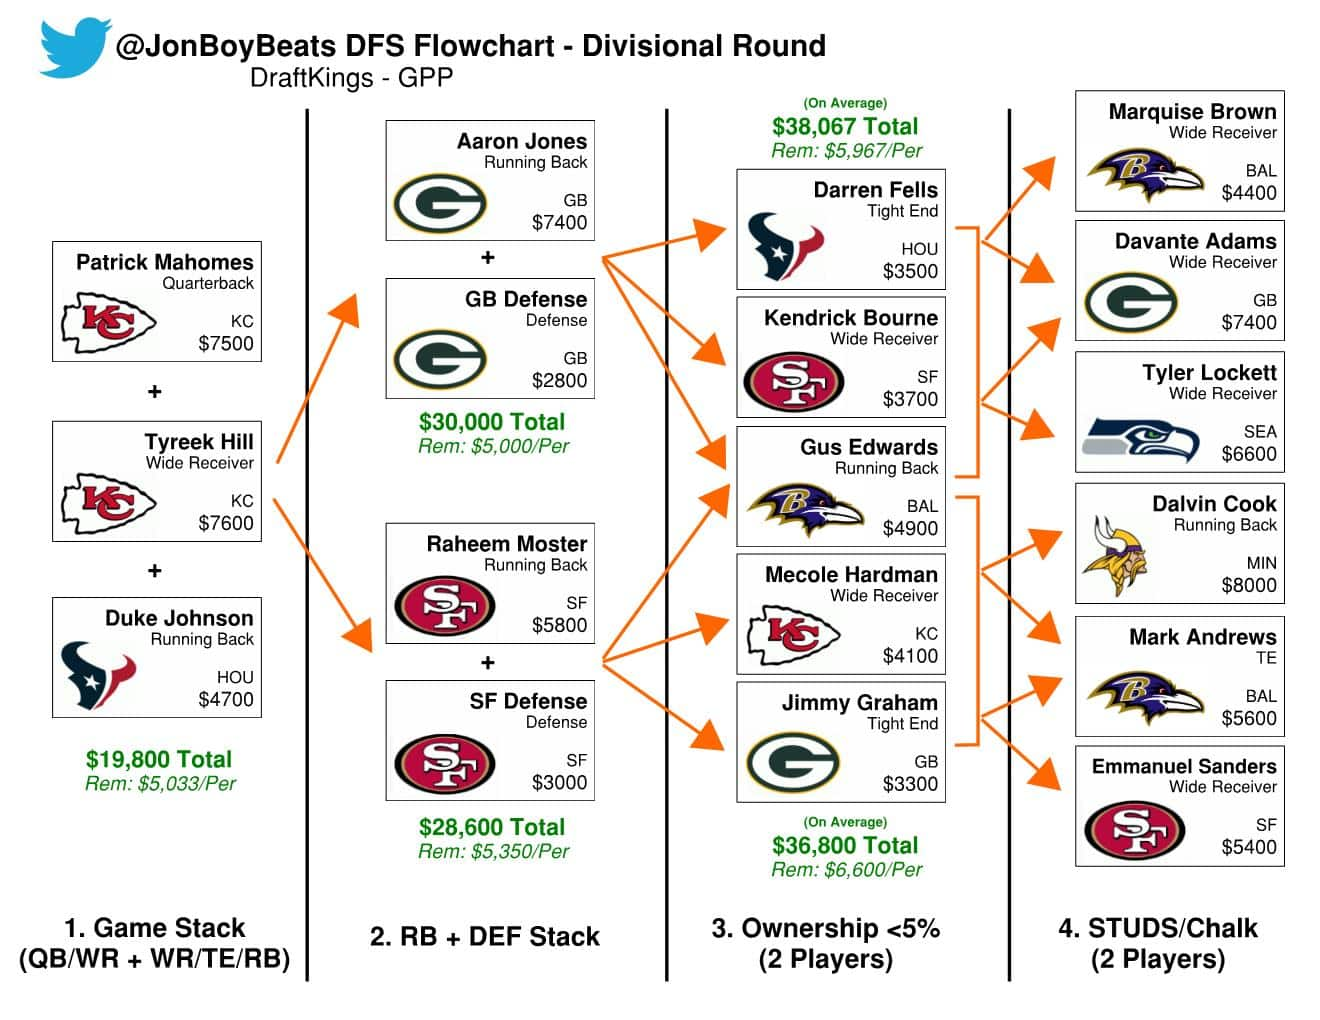 Nfl Playoffs Divisional Round Draftkings Flowchart Sports Gambling Podcast